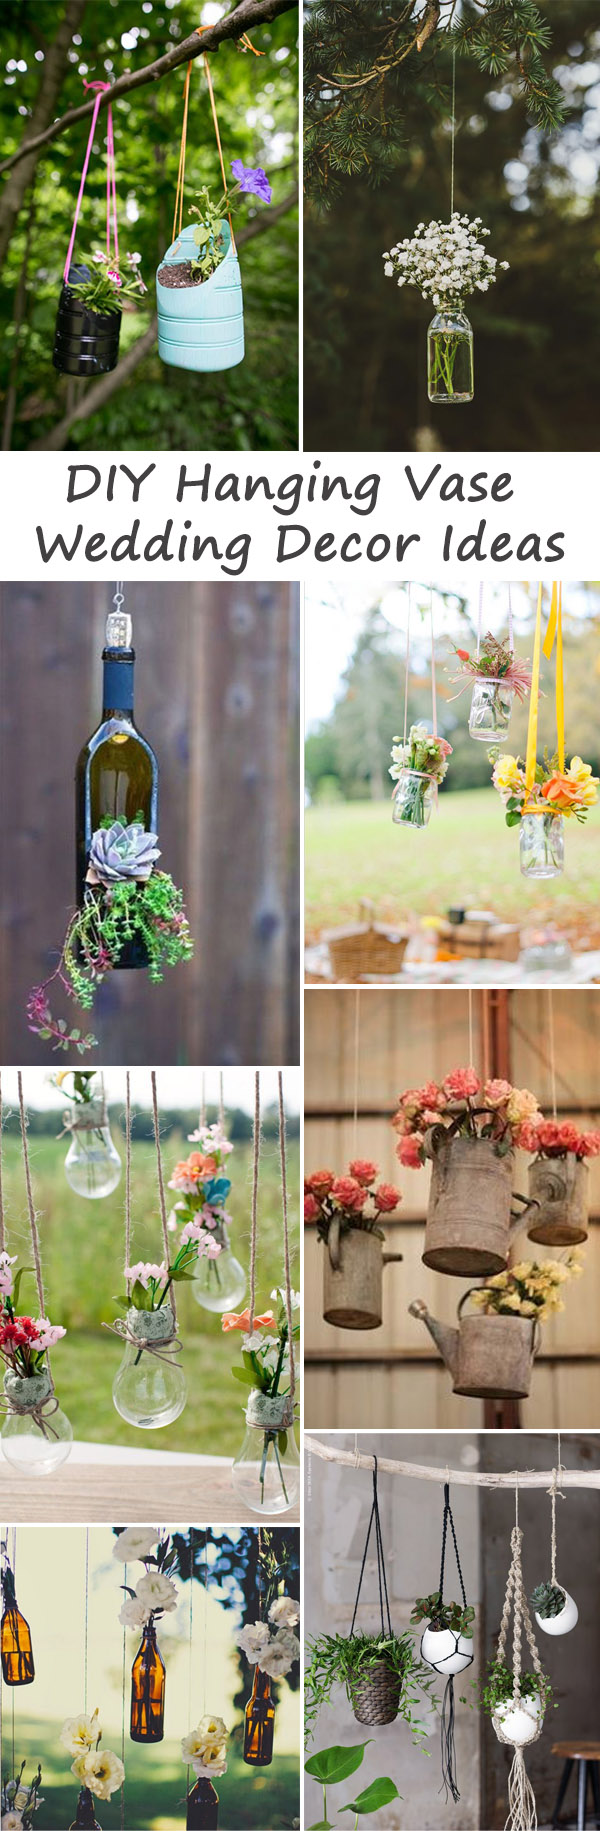 Creative DIY Hanging Vase Wedding Decoration Ideas